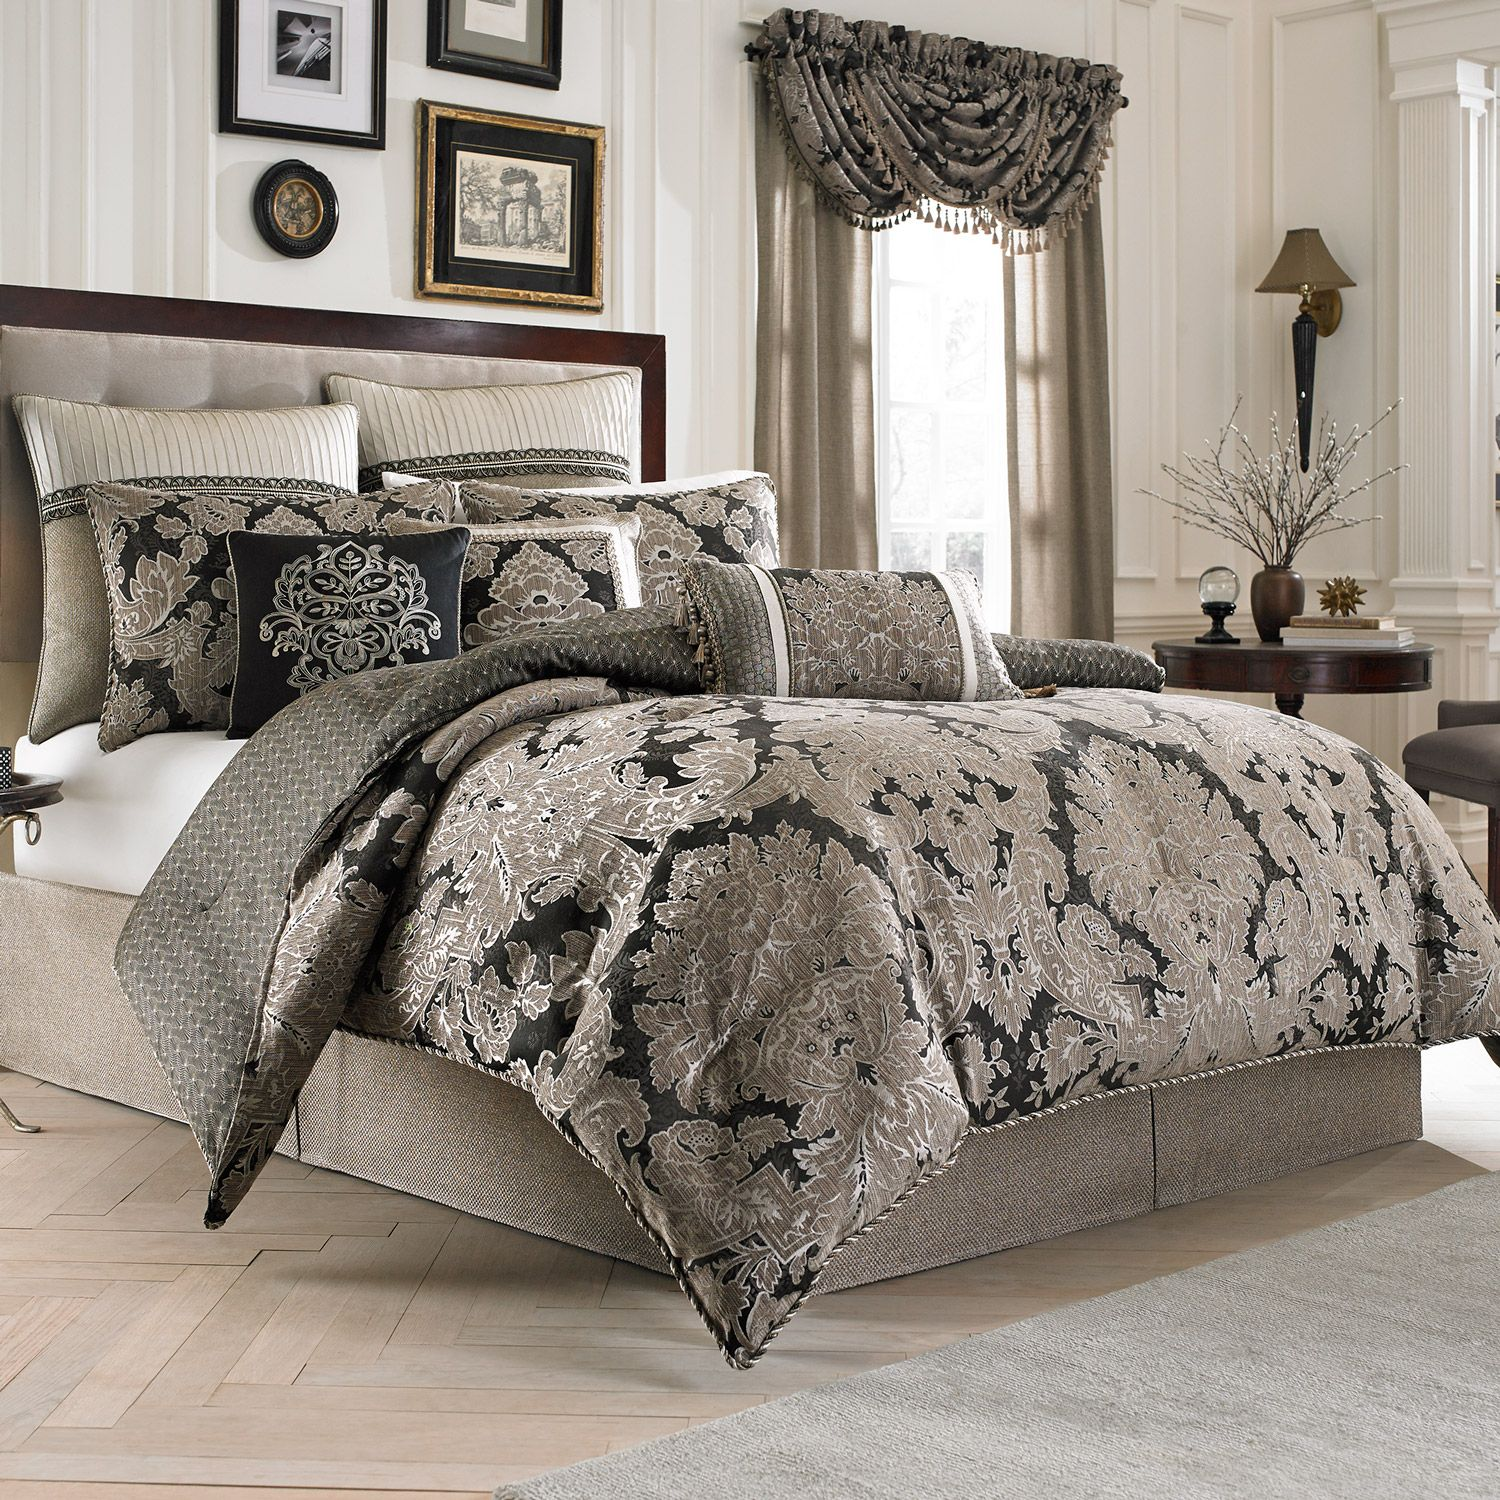 queen bedroom comforter sets. Comfy queen size comforter sets for bedroom design with cheap  Bedroom Design Charming Queen Size Comforter Sets For